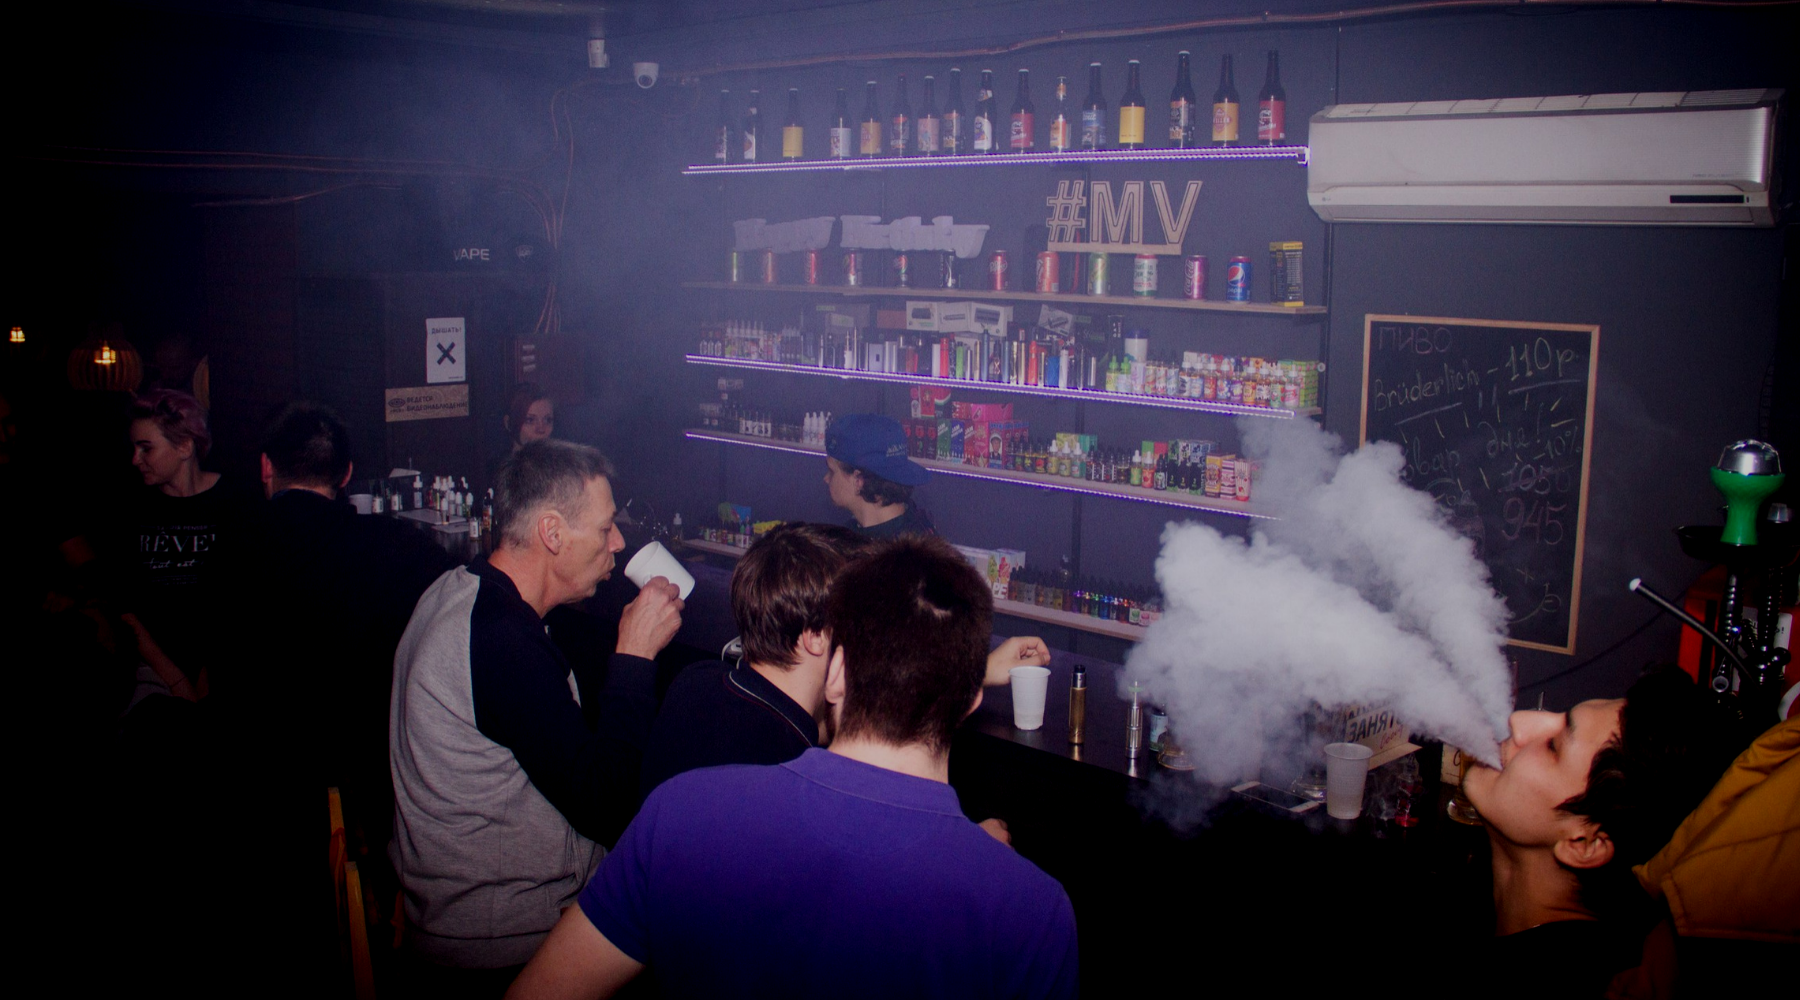 Vape Shop in Gedling, UK